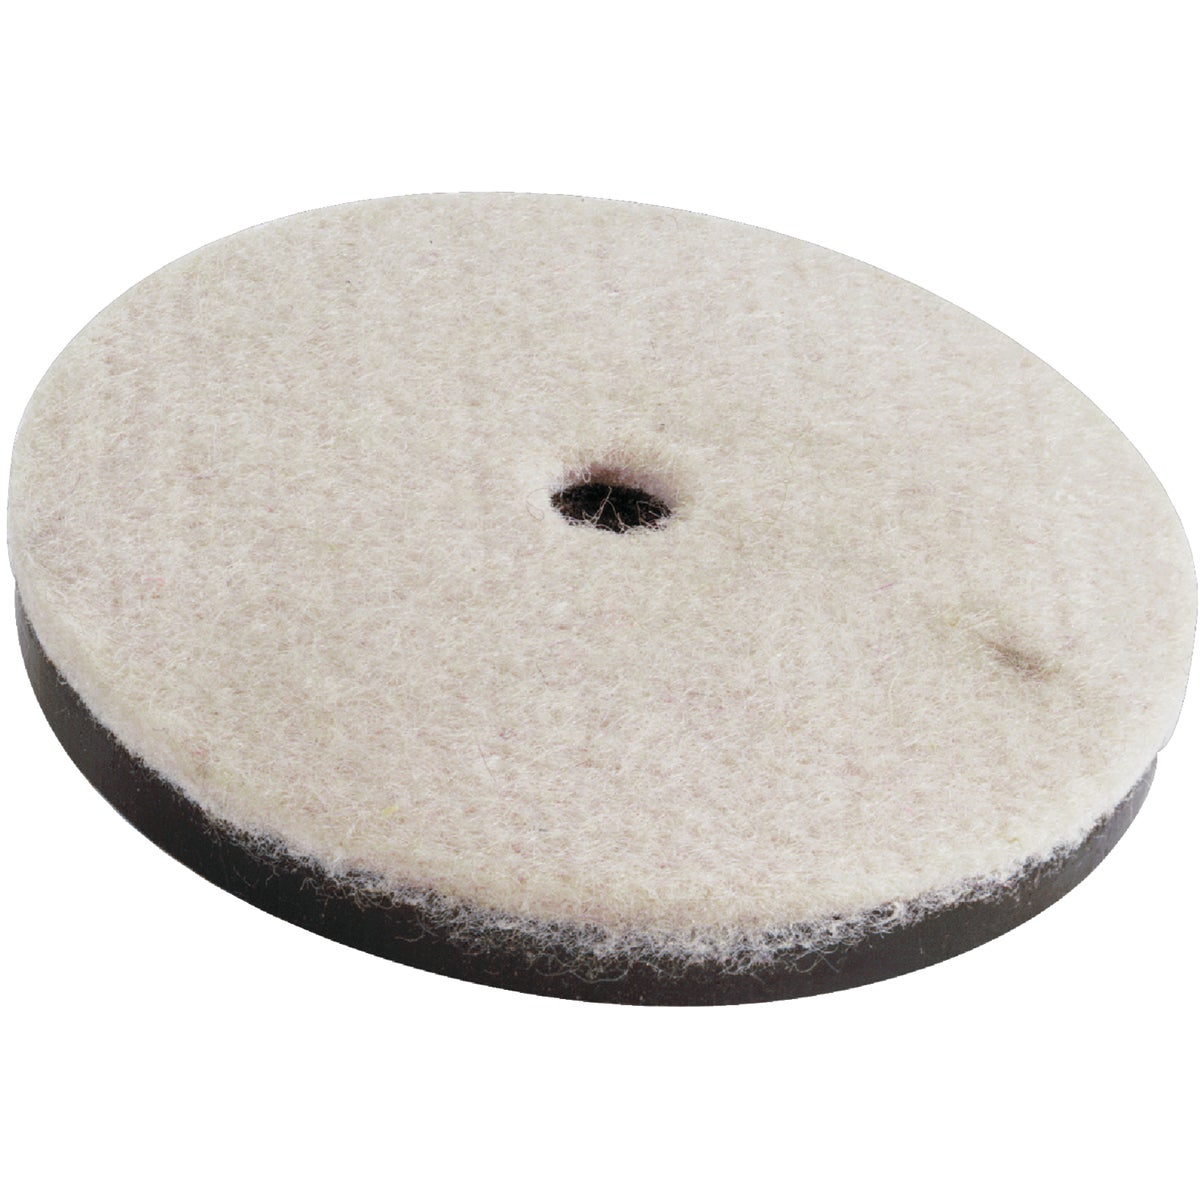 "2"" ROUND FELT CASTER CUP"